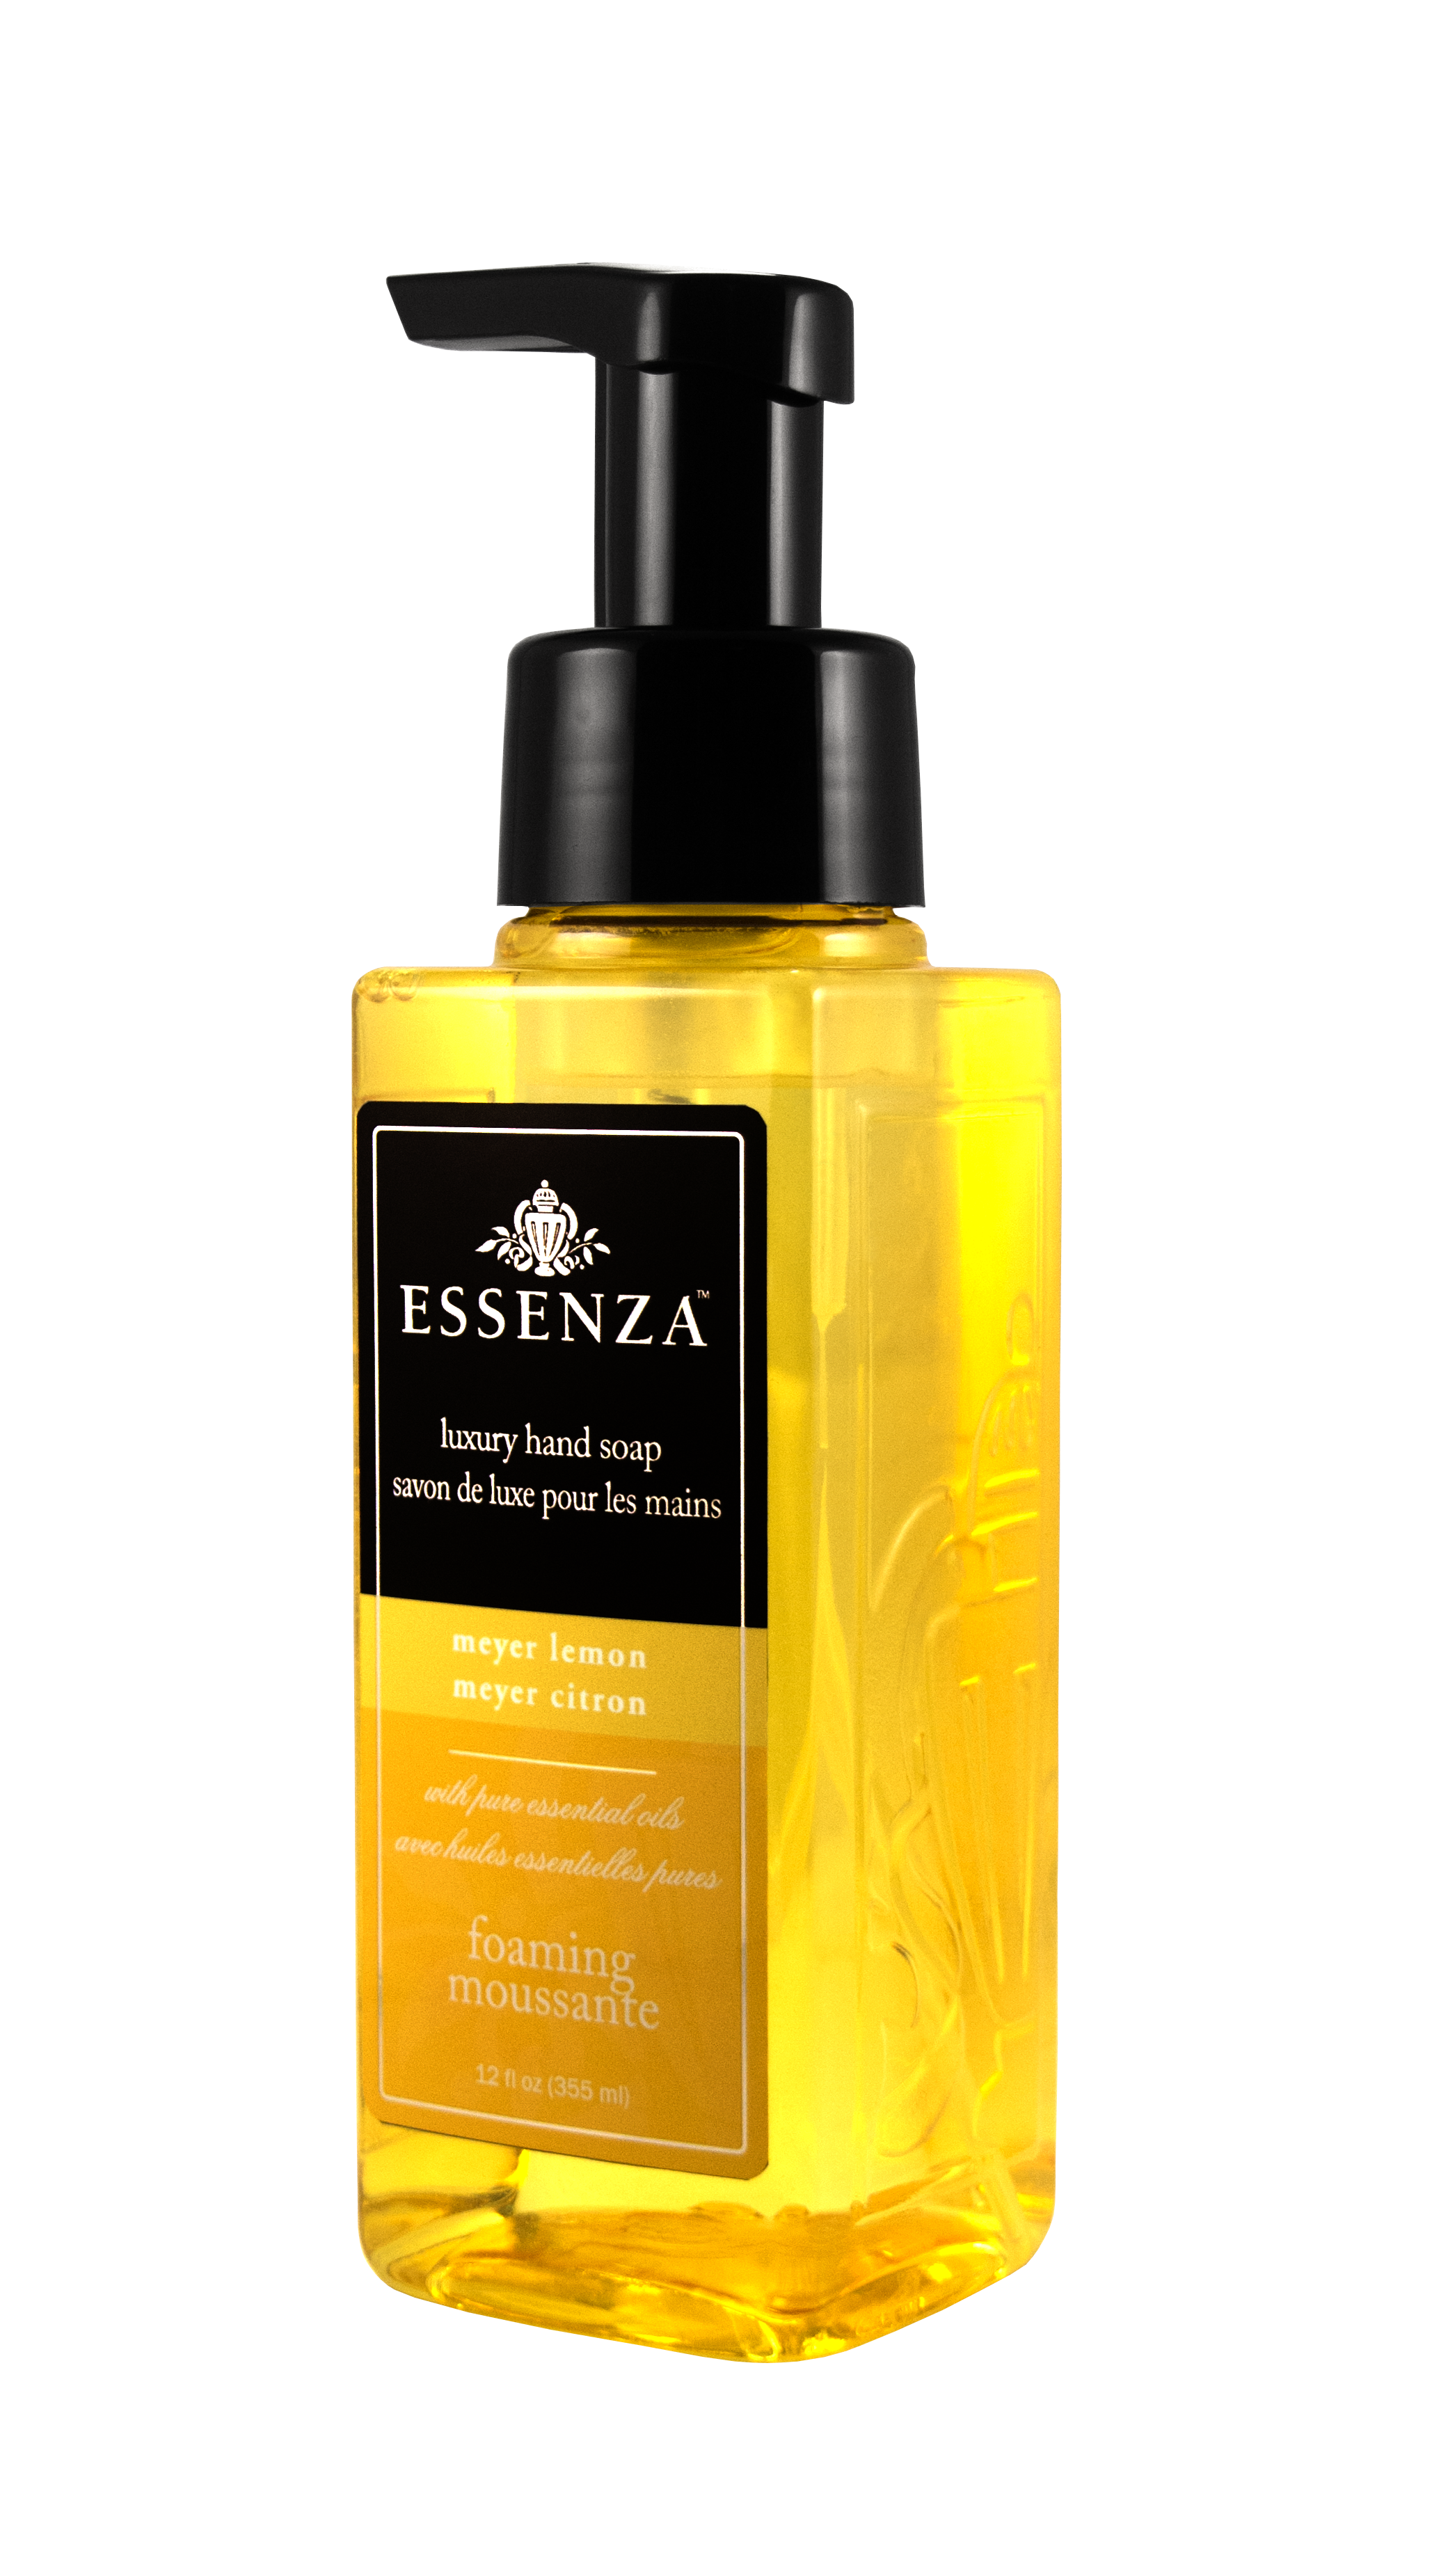 Experience Meyer Lemon Hand Soap by Essenza (Olympic Mountain Products)